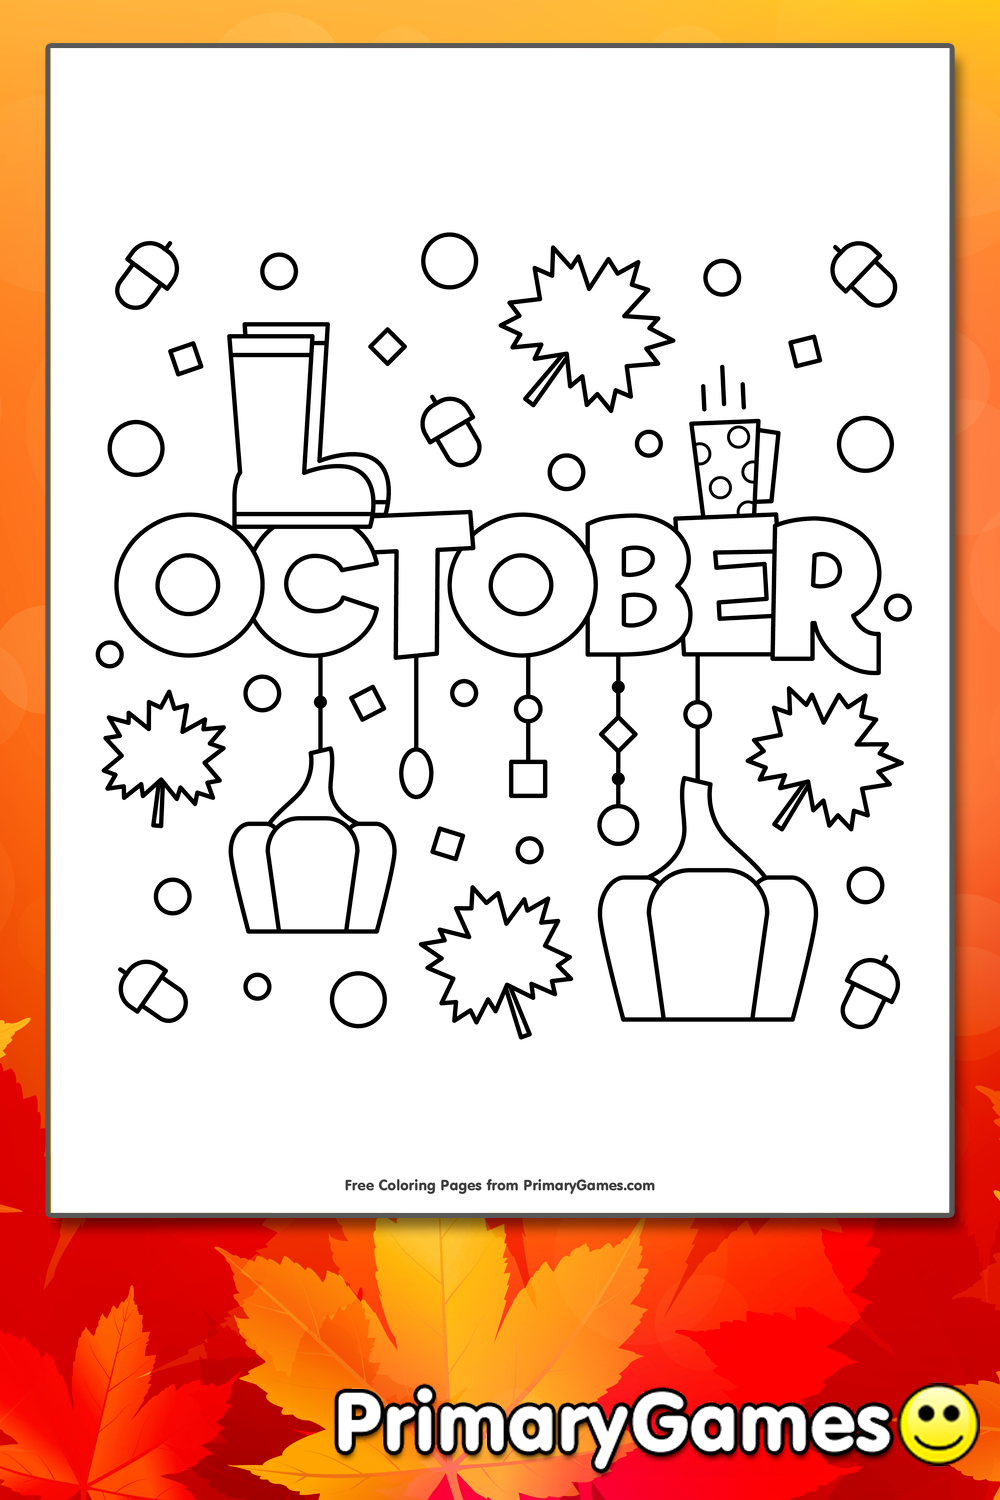 October Coloring Page Free Printable Ebook In 2020 Coloring Pages Fall Coloring Pages Free Coloring Pages